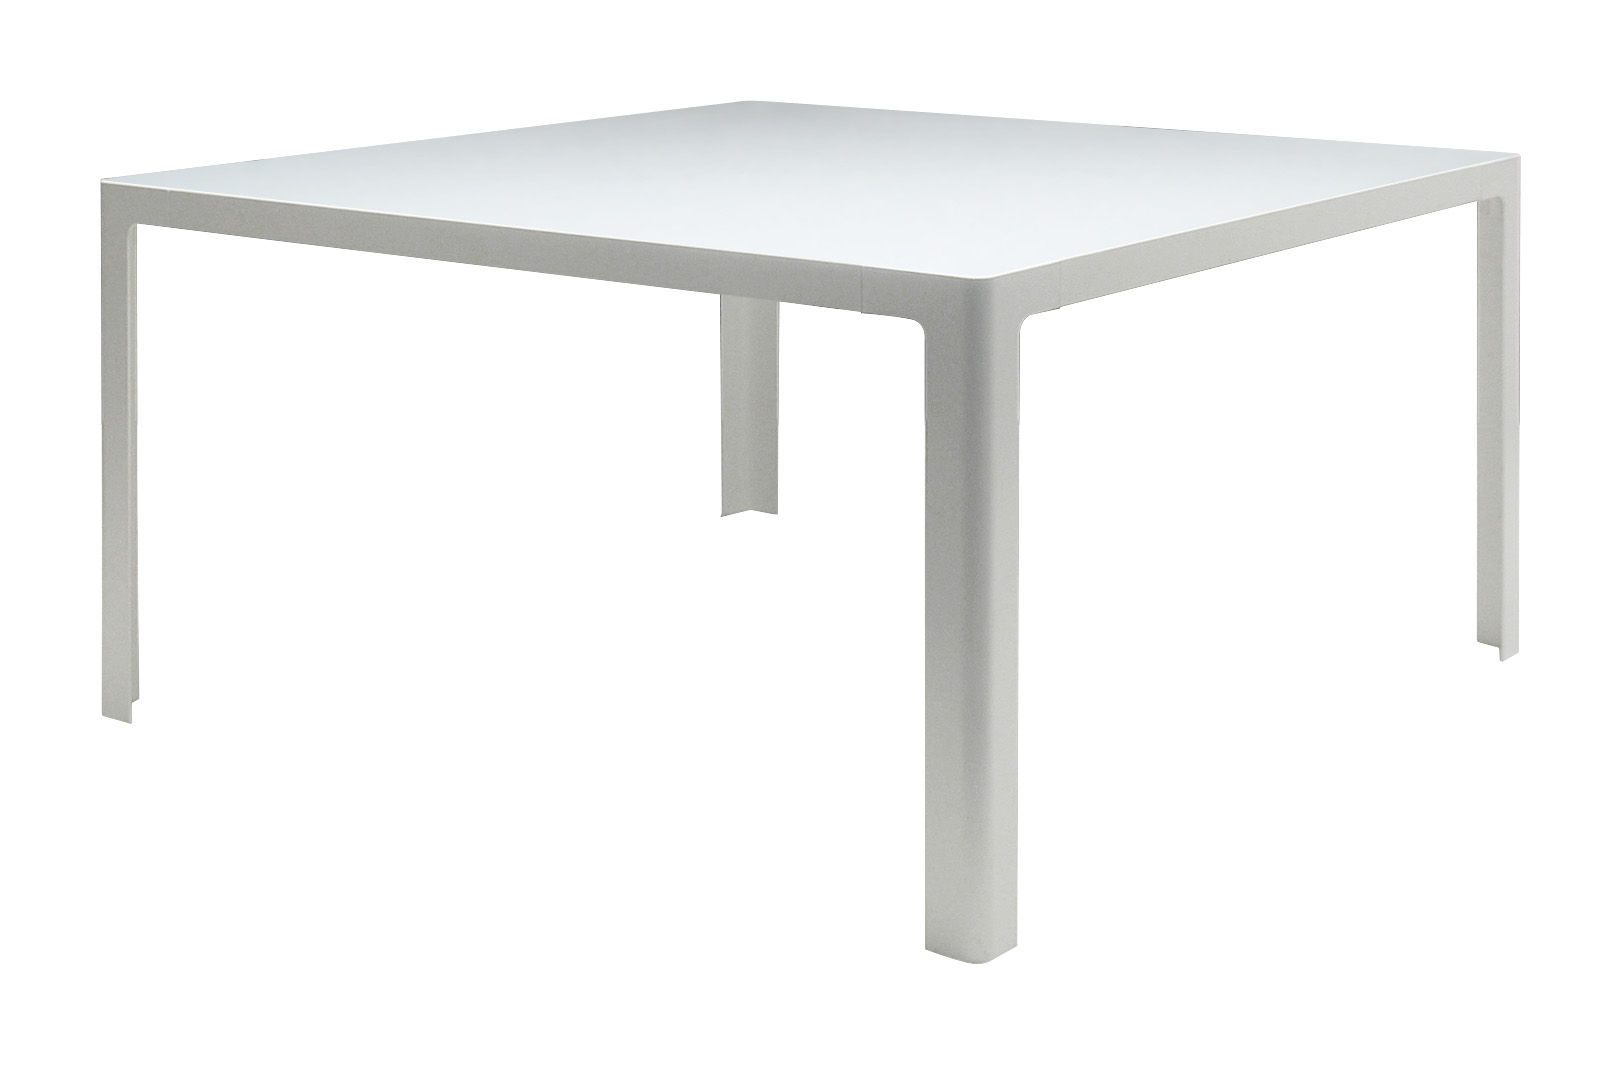 table metisse verre 140 x 140 cm plateau blanc structure blanc semi opaque zeus. Black Bedroom Furniture Sets. Home Design Ideas